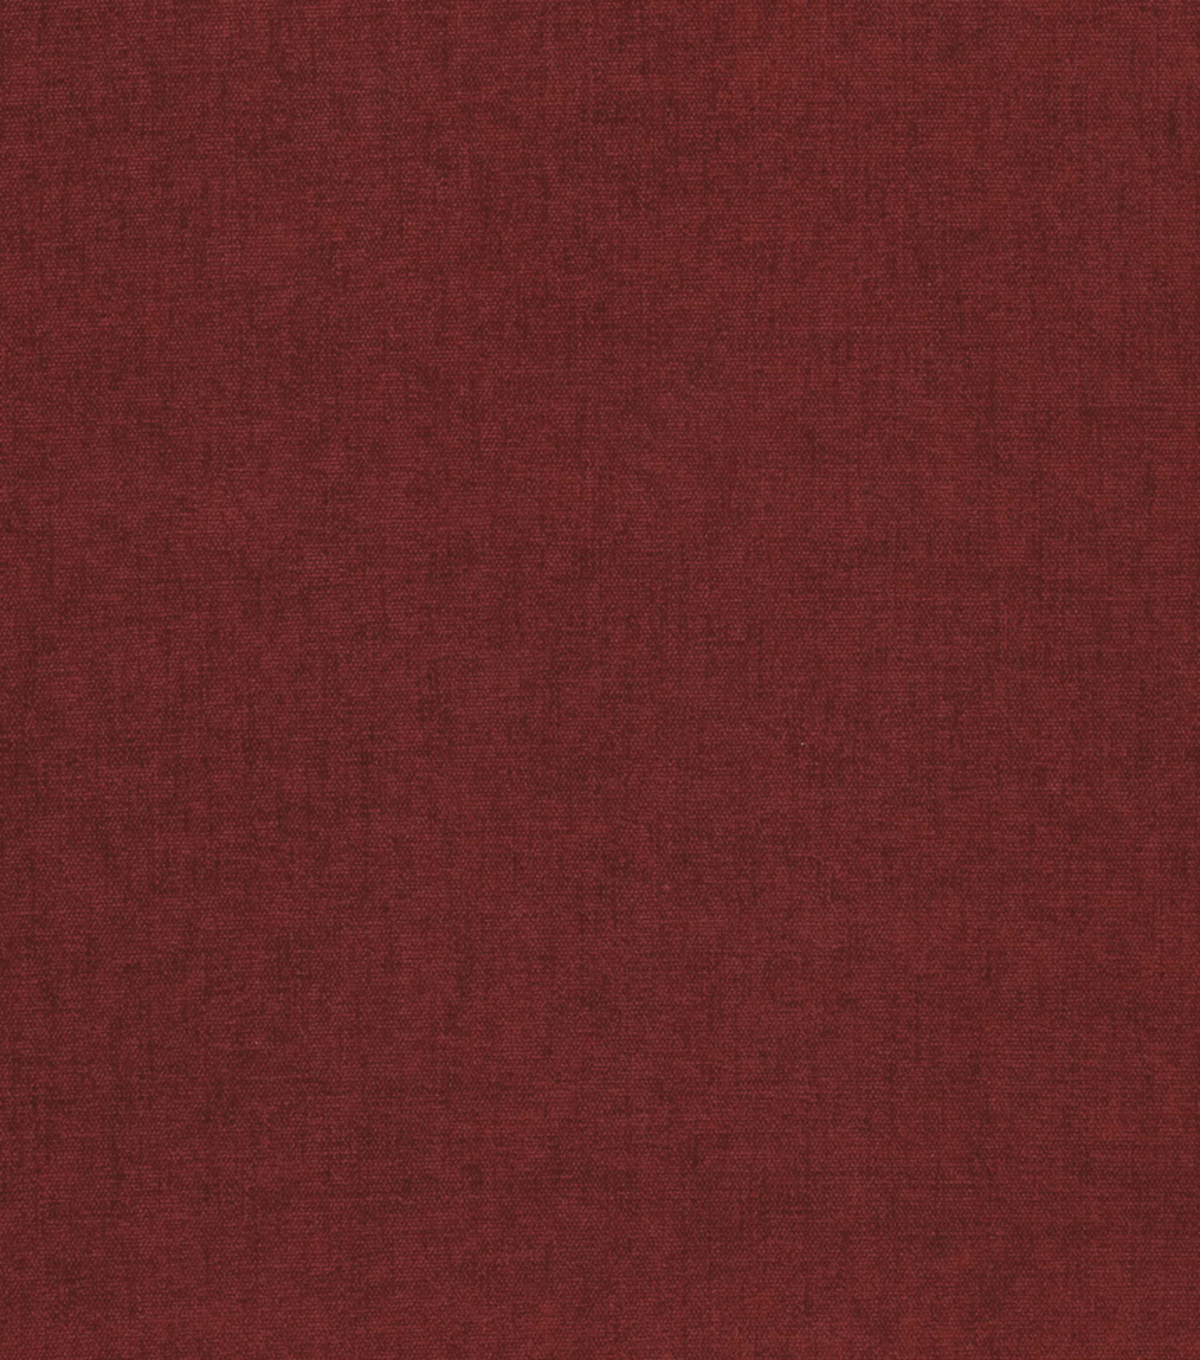 Home Decor 8\u0022x8\u0022 Fabric Swatch-Charisma Brick